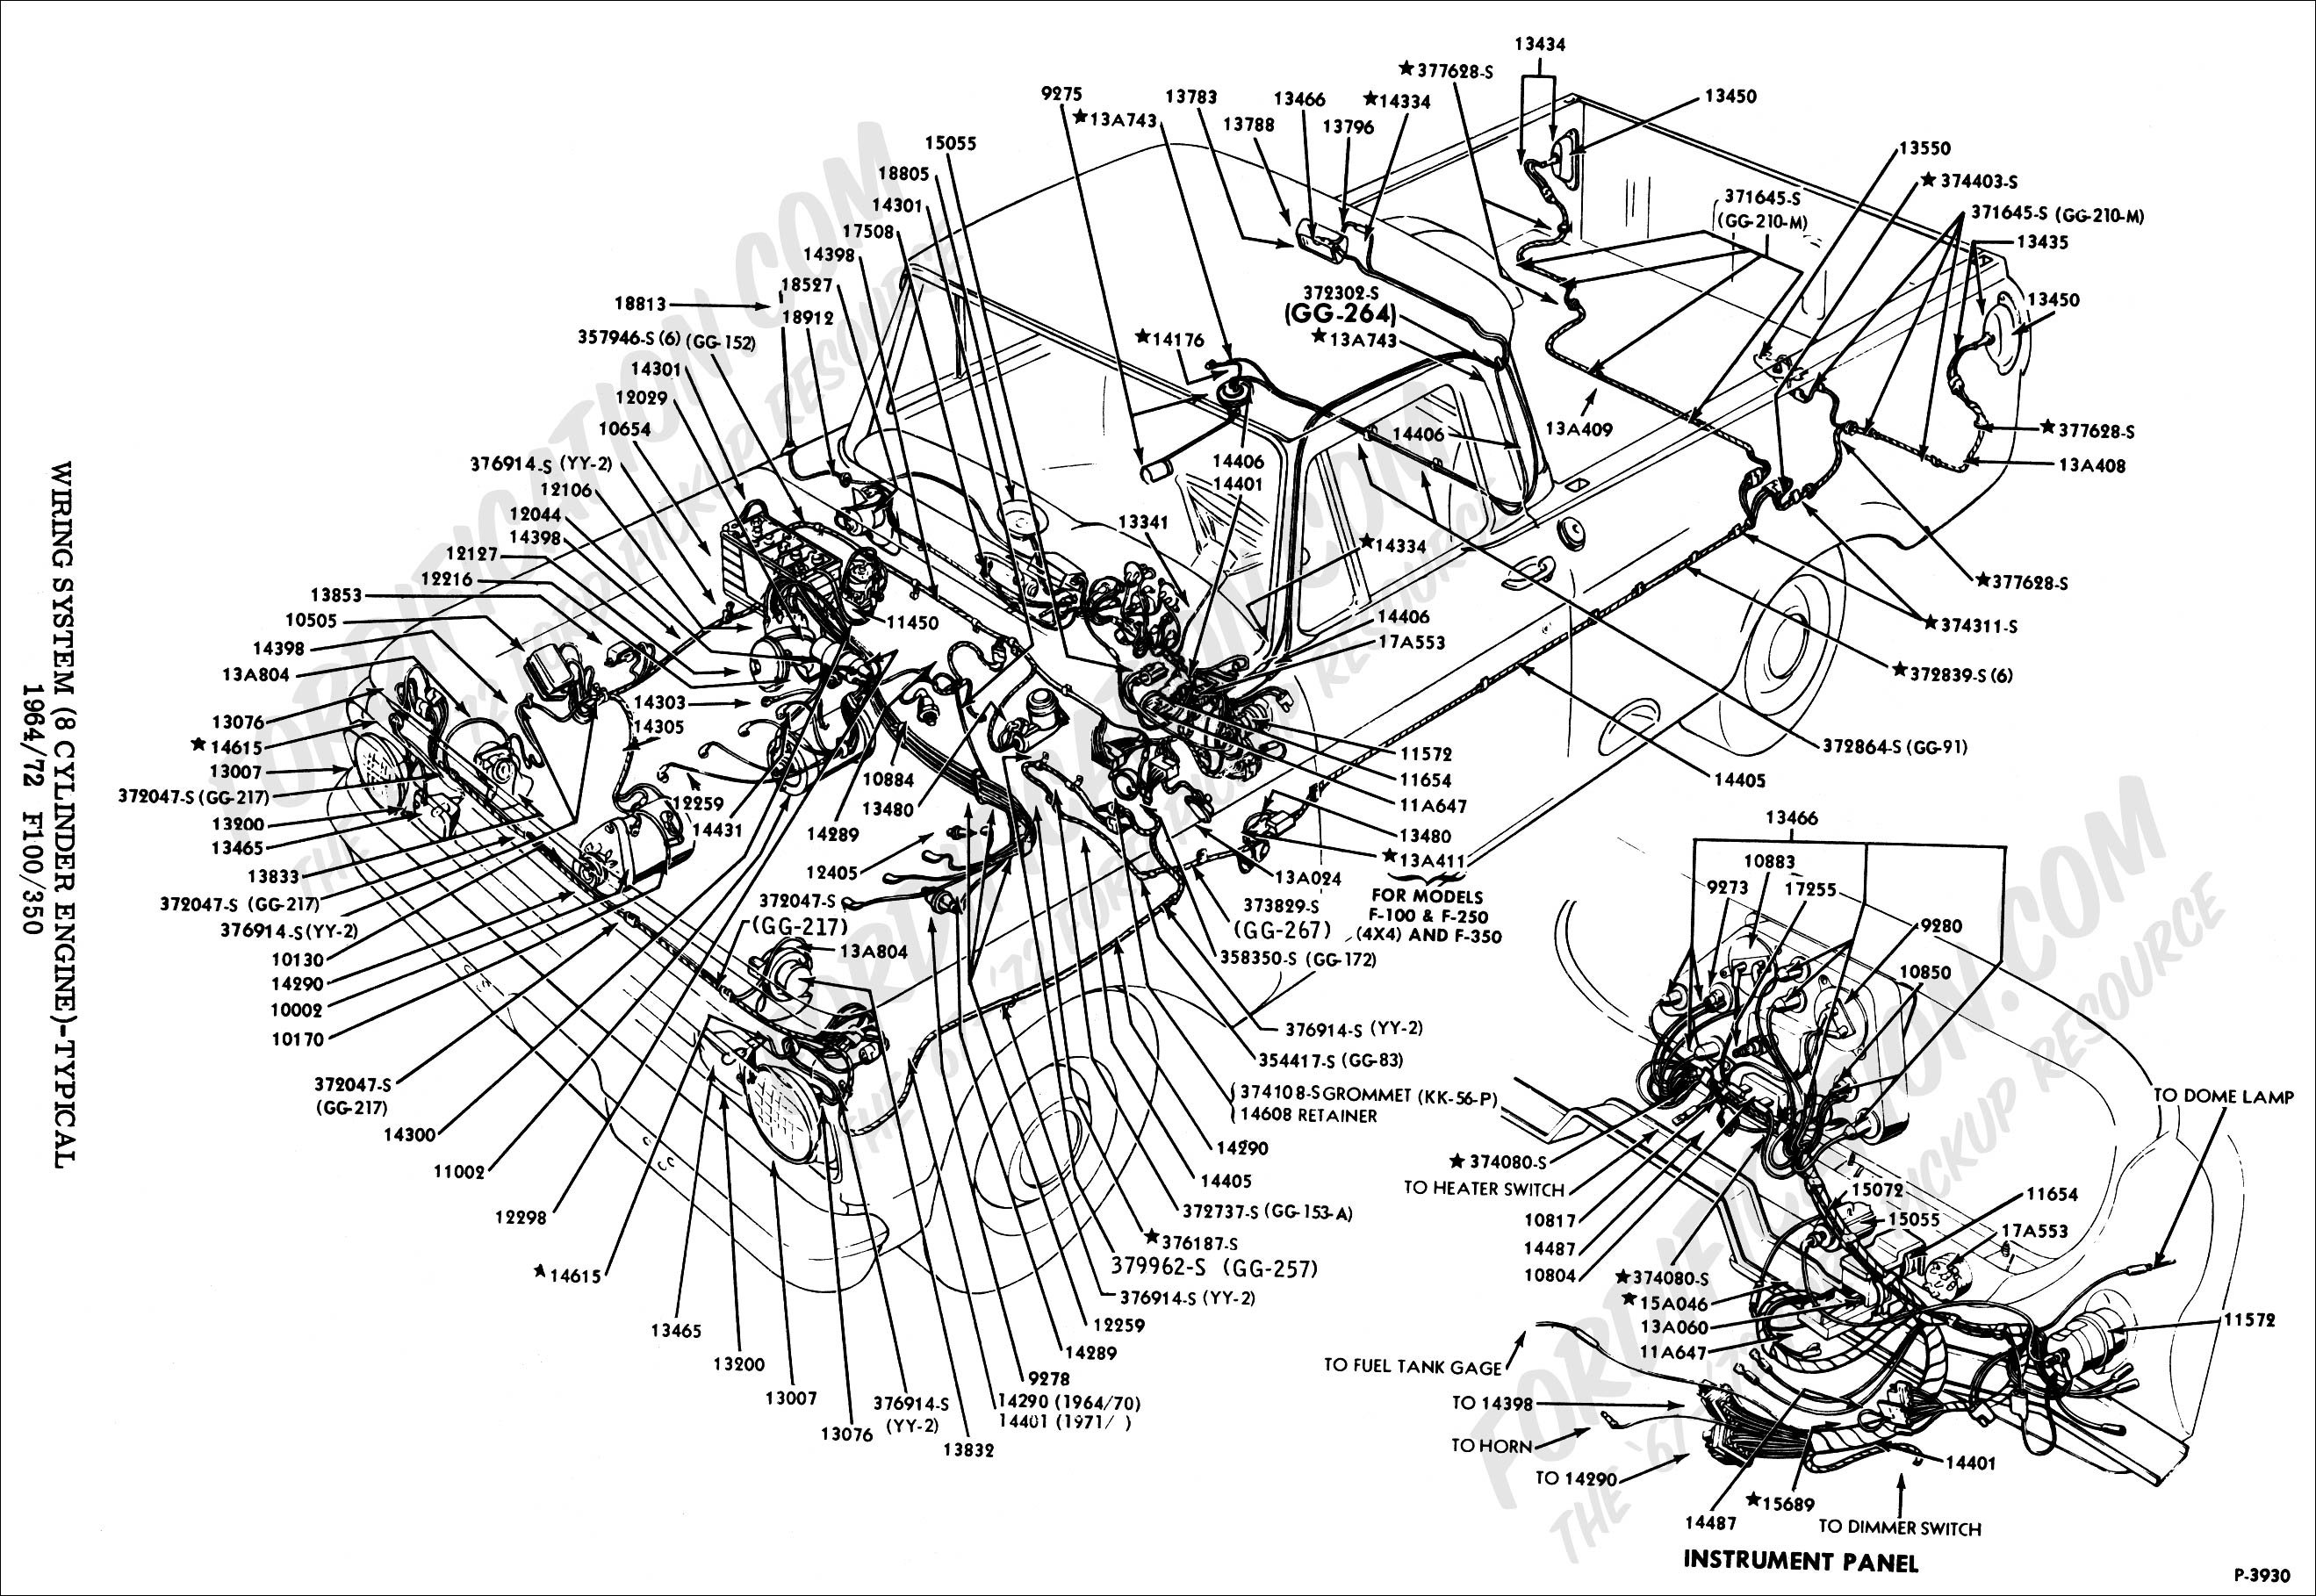 wiringsystem_HI 1966 f100 wiring diagram 1966 ford f100 dash wiring diagram \u2022 free 1946 ford truck wiring diagram at eliteediting.co